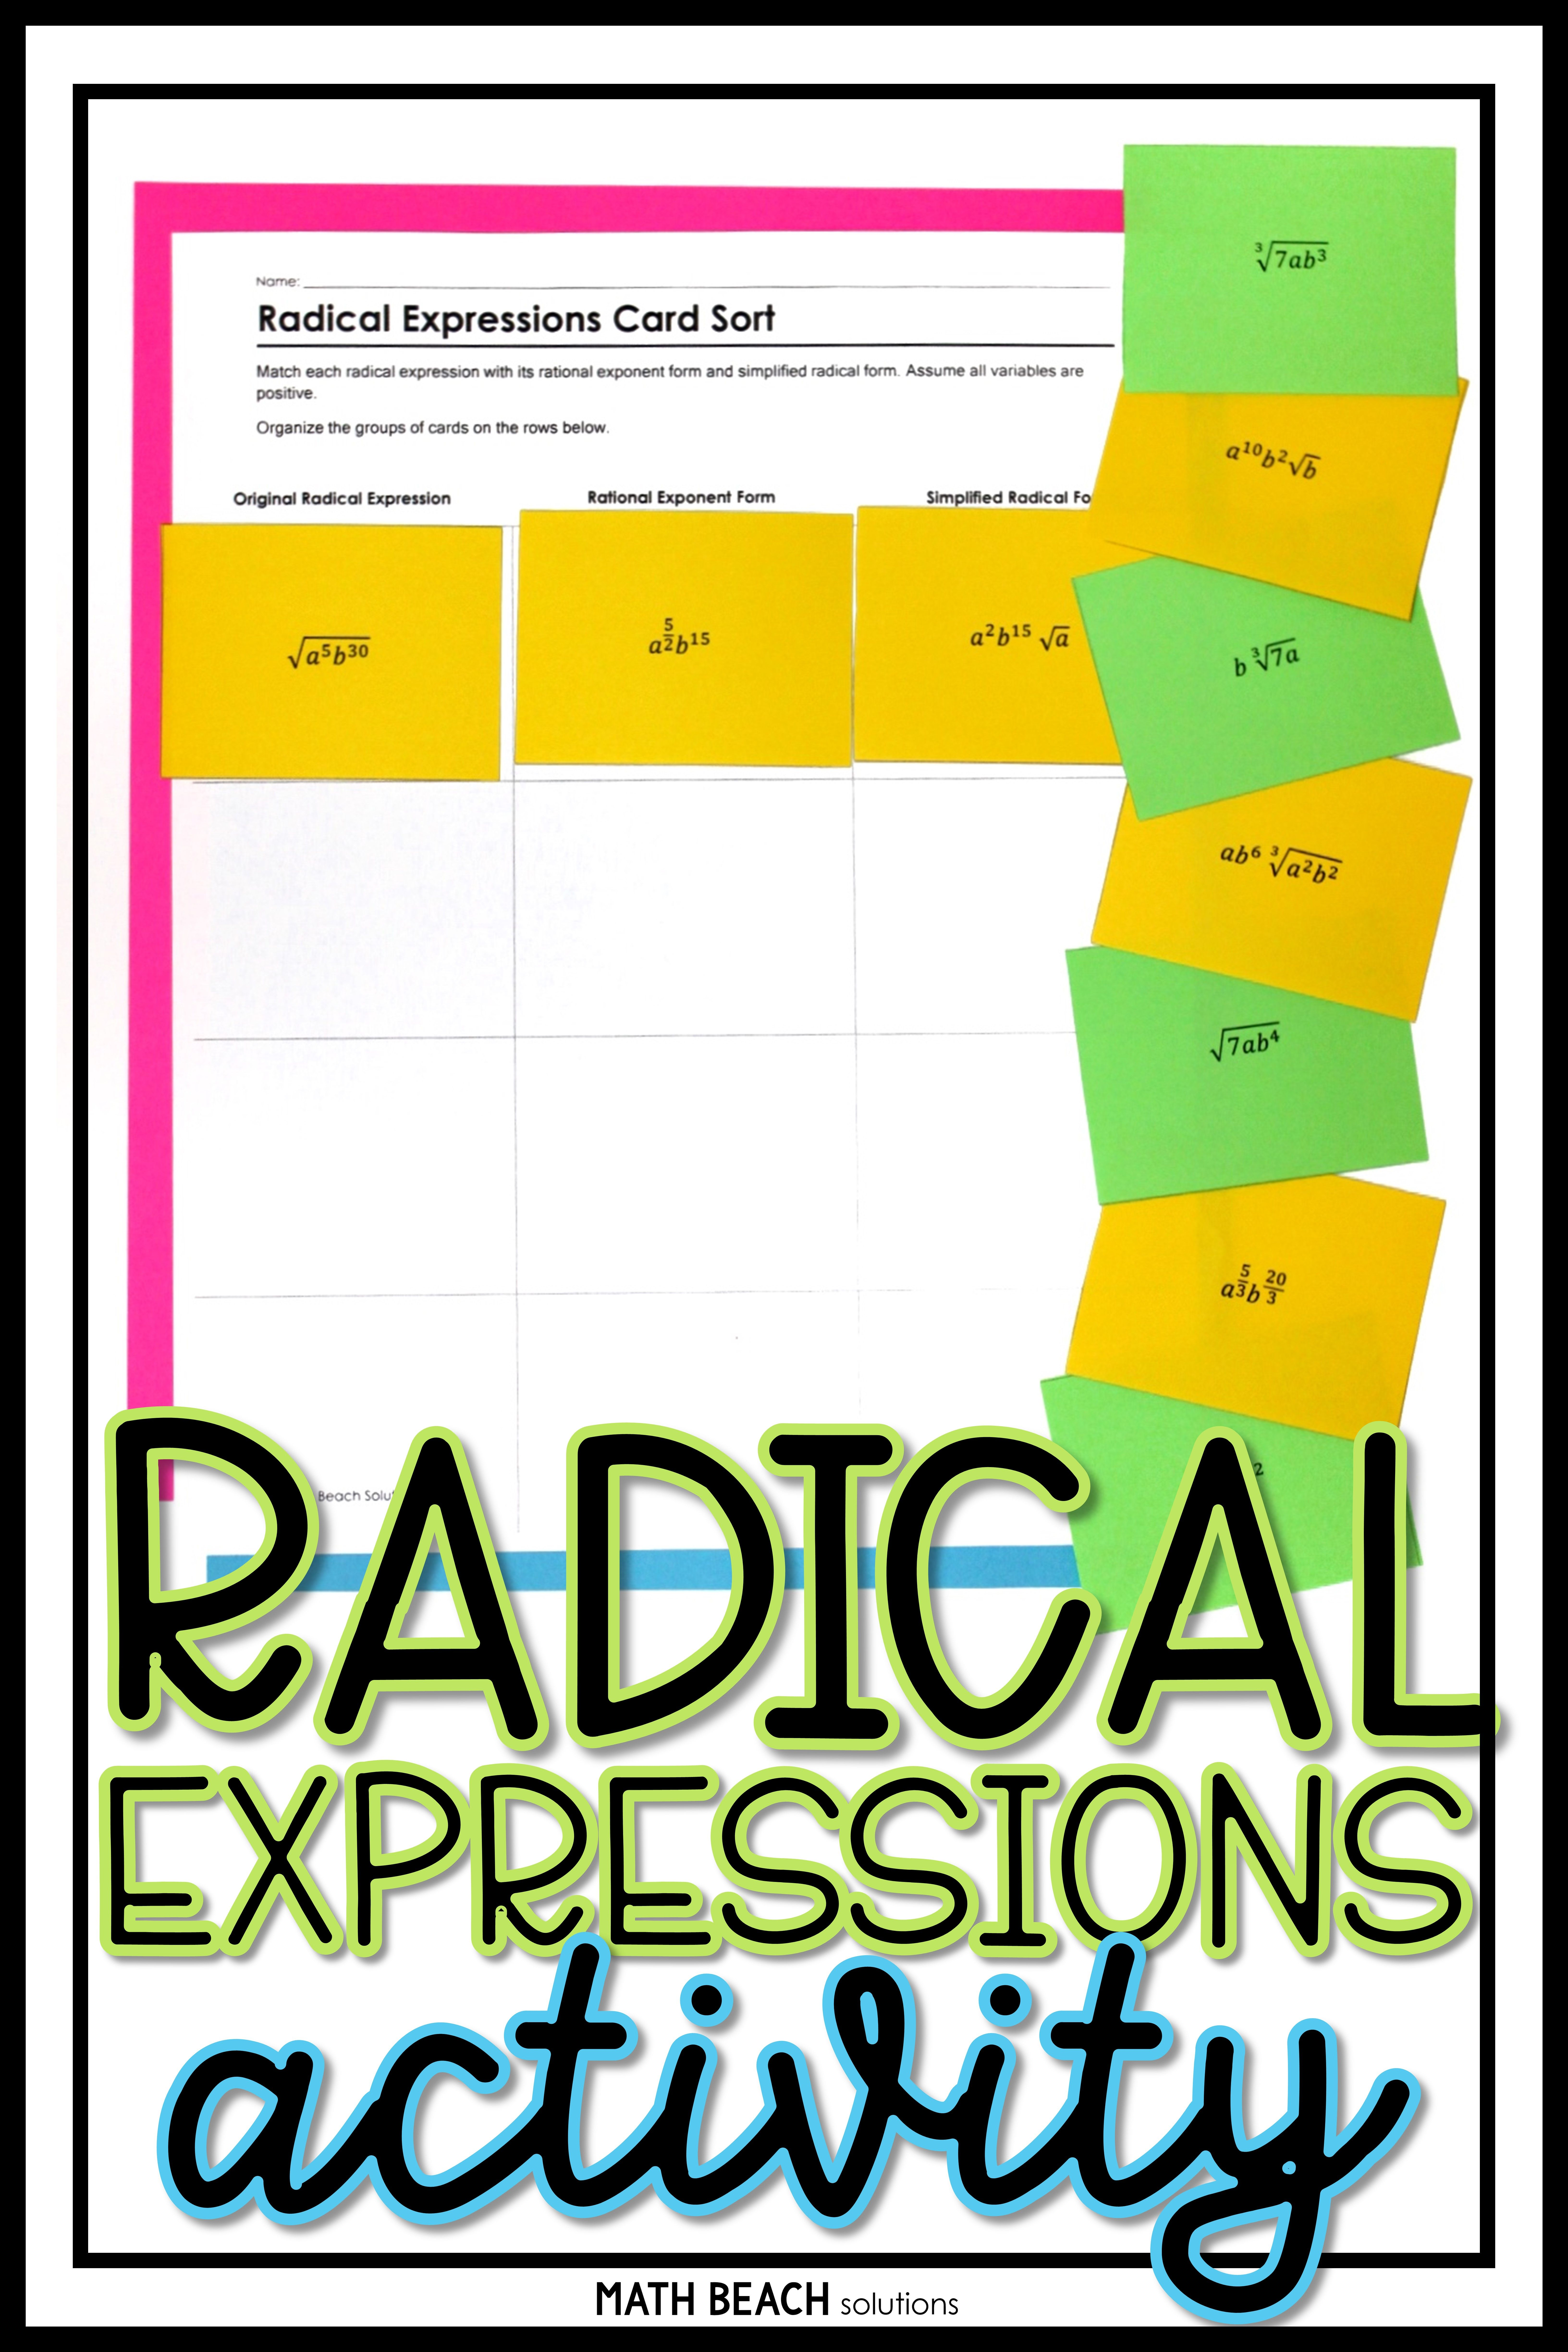 Radical Expressions Card Sort Activity